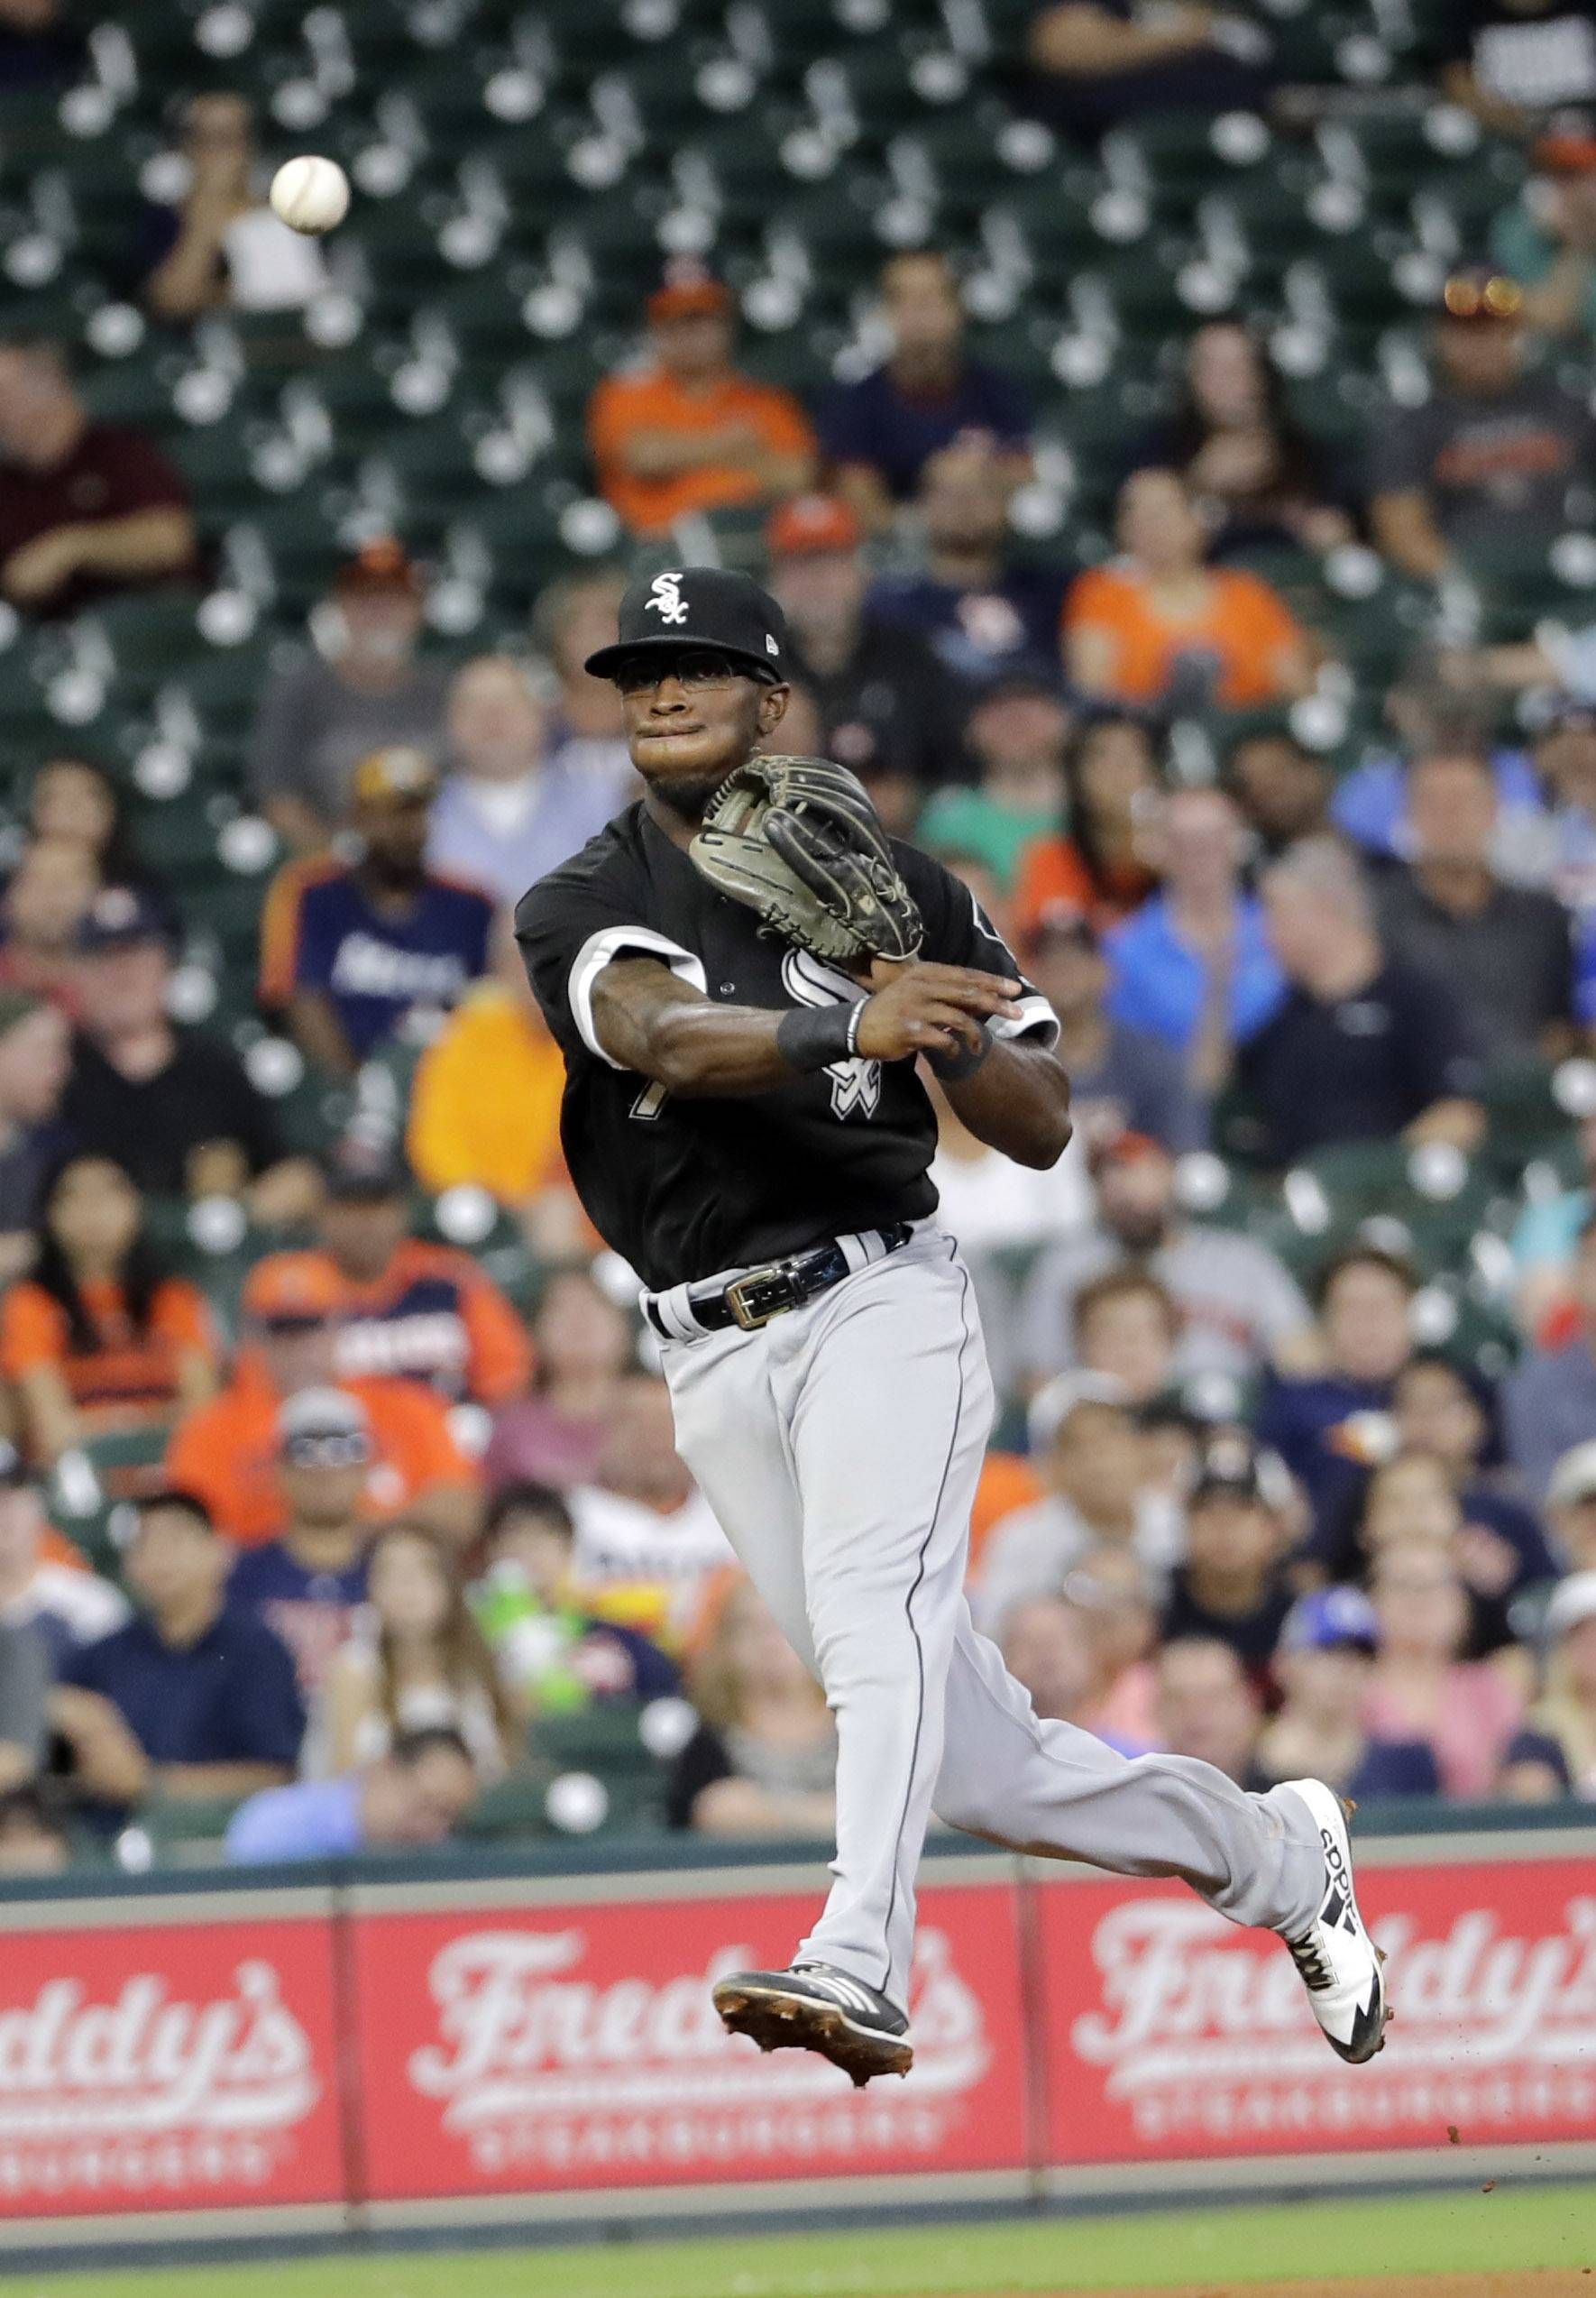 Chicago White Sox shortstop Tim Anderson throws to first for the out after fielding a ground ball by Houston Astros' Carlos Correa during the fourth inning of a baseball game Tuesday, Sept. 19, 2017, in Houston.